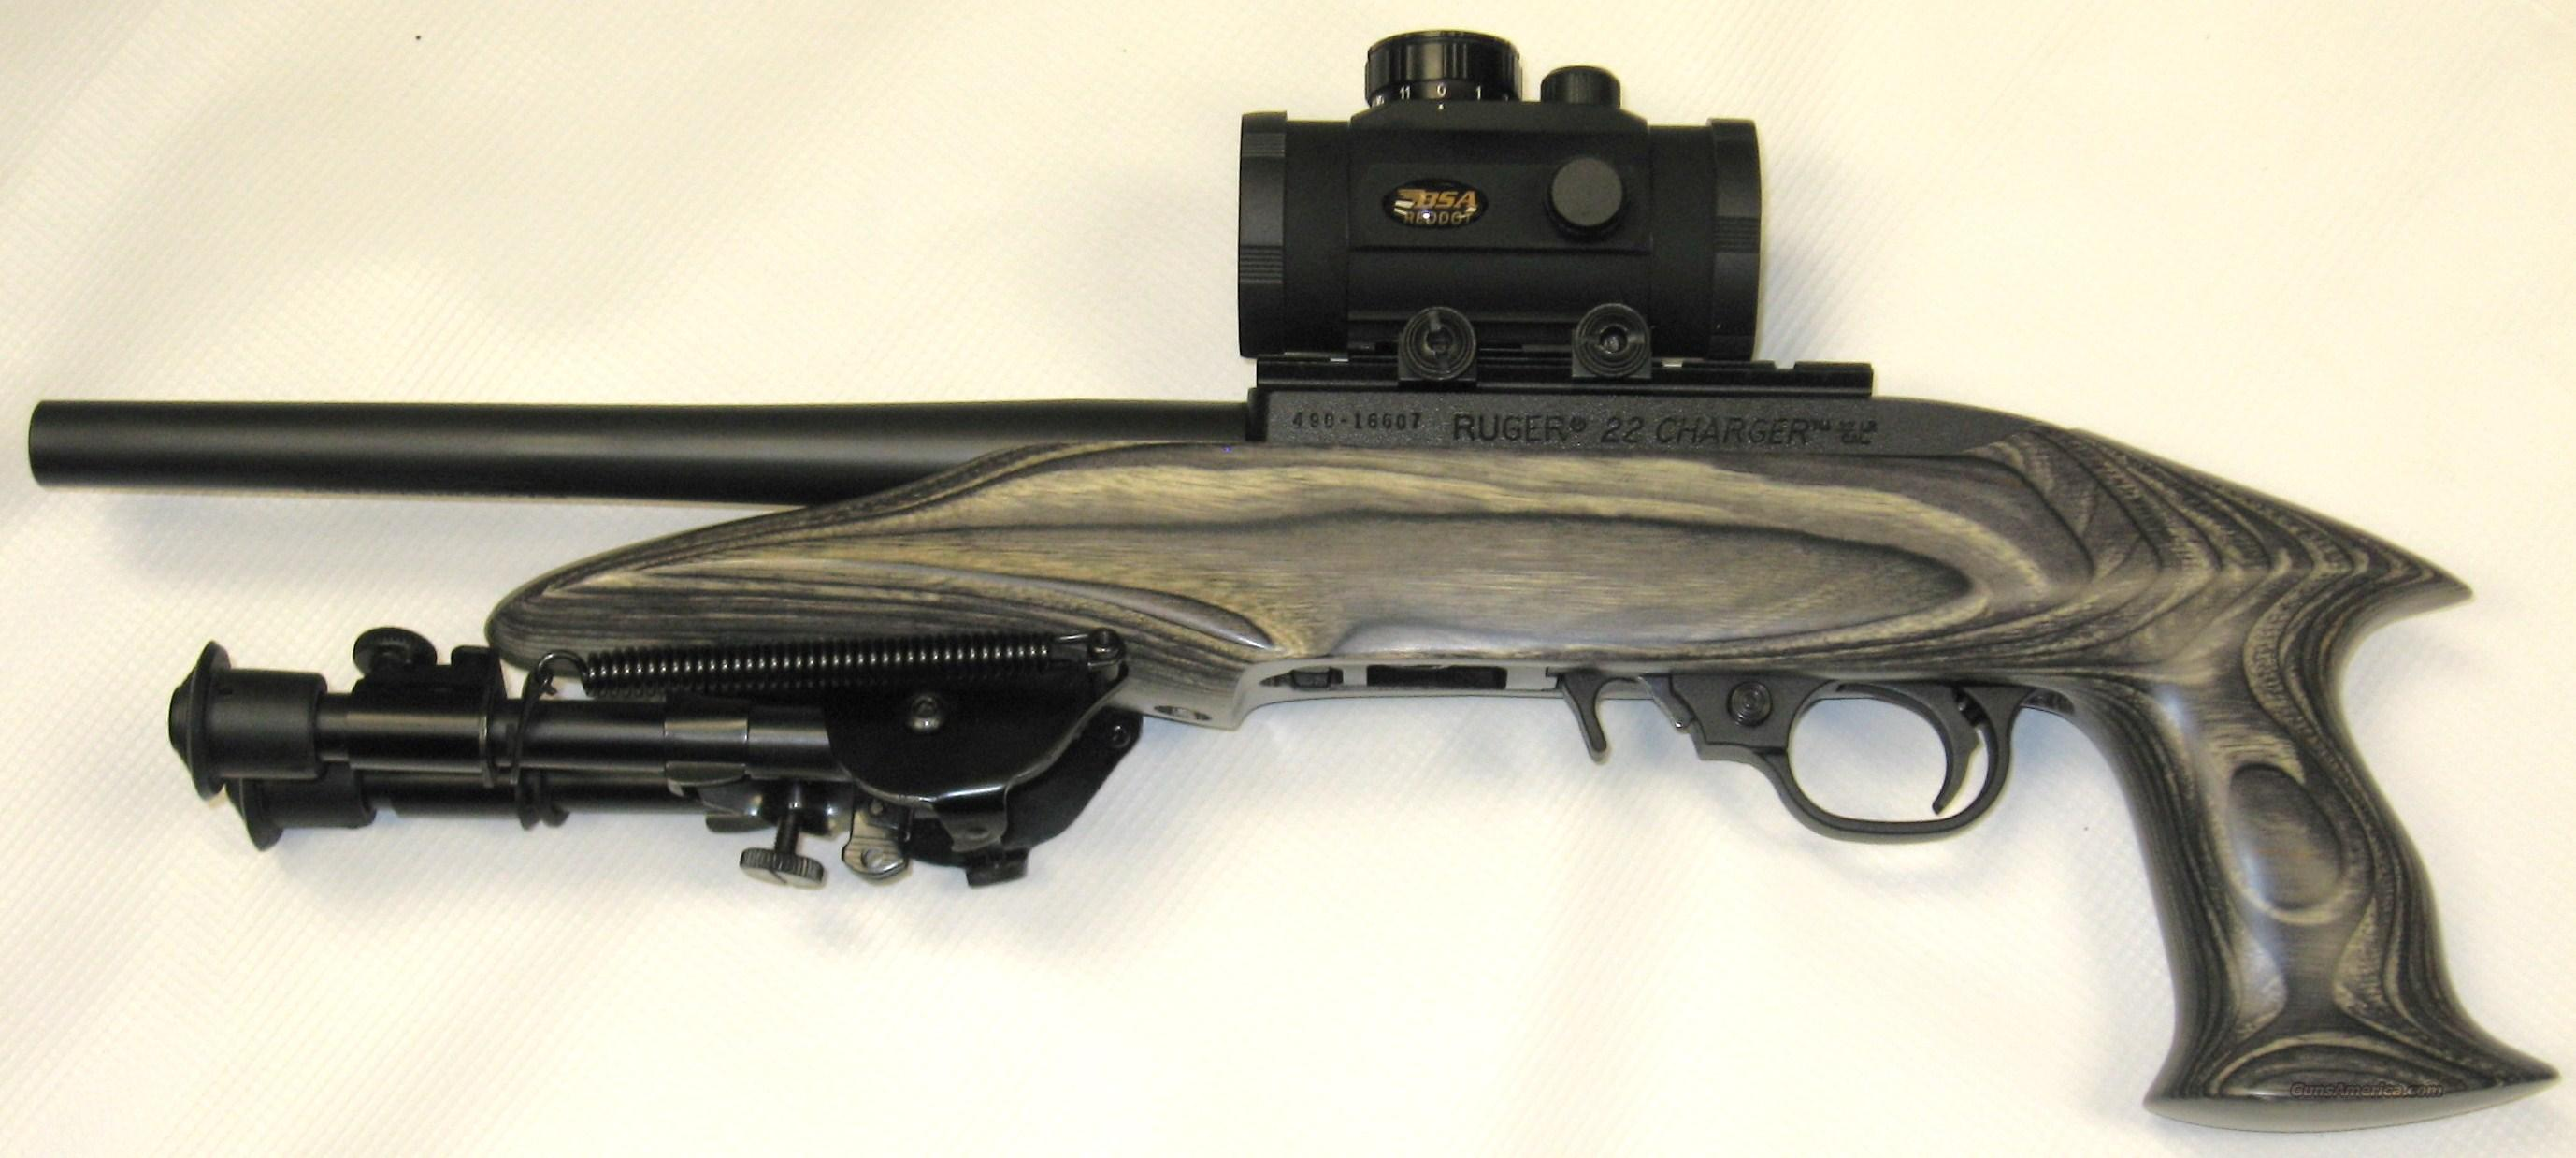 Ruger 22 Charger w/ BSA Red-Dot  Guns > Pistols > Ruger Semi-Auto Pistols > Charger Series